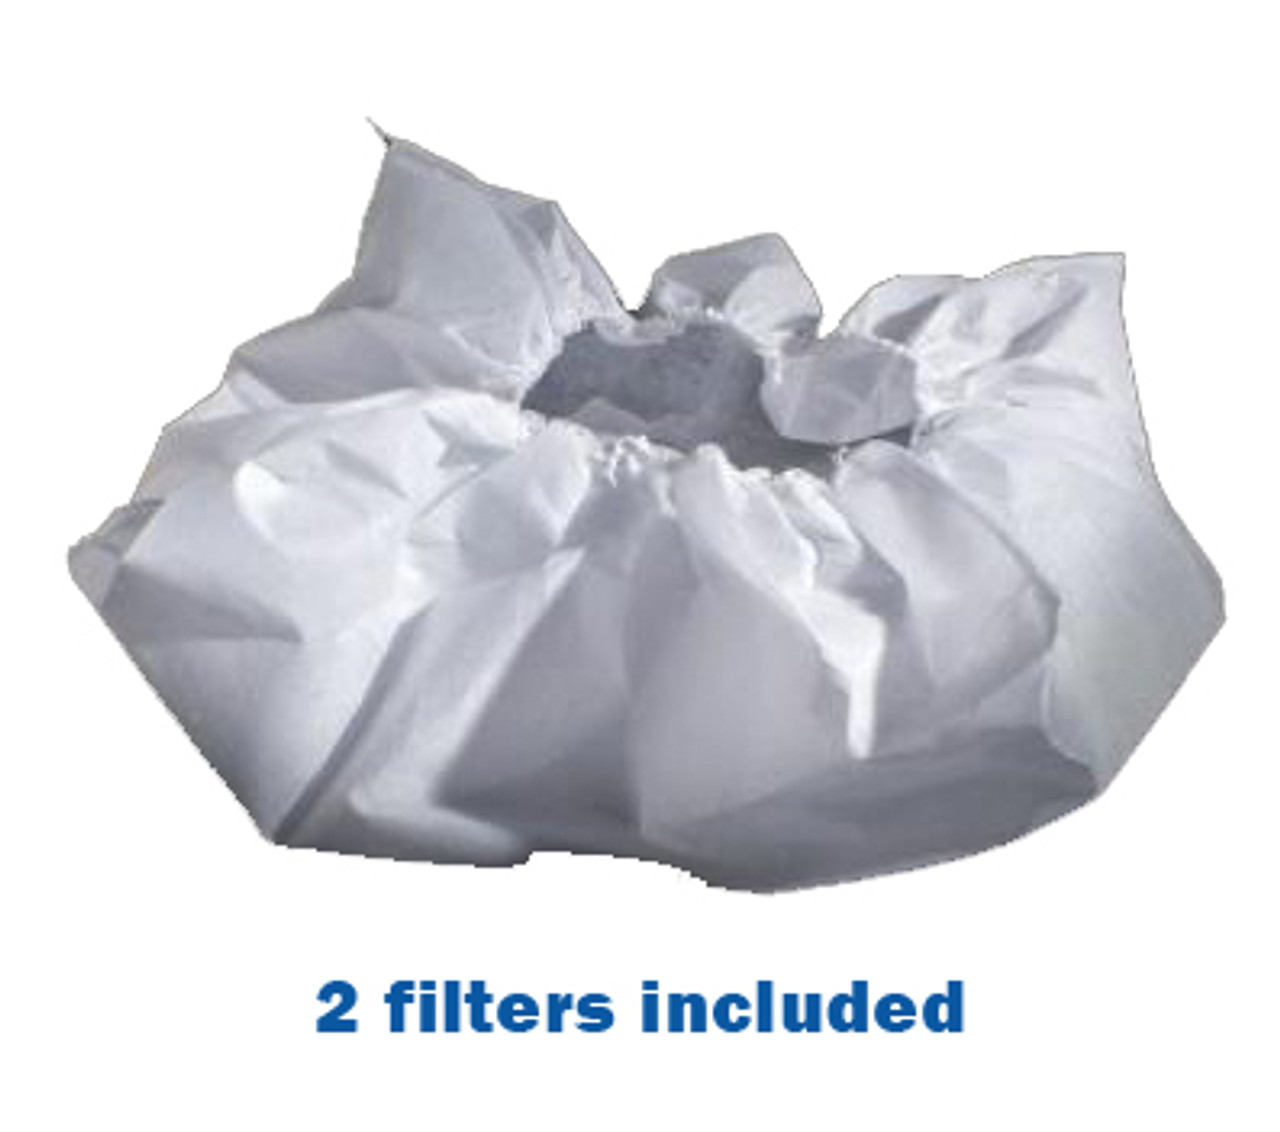 filter replacements for mop sink strainers